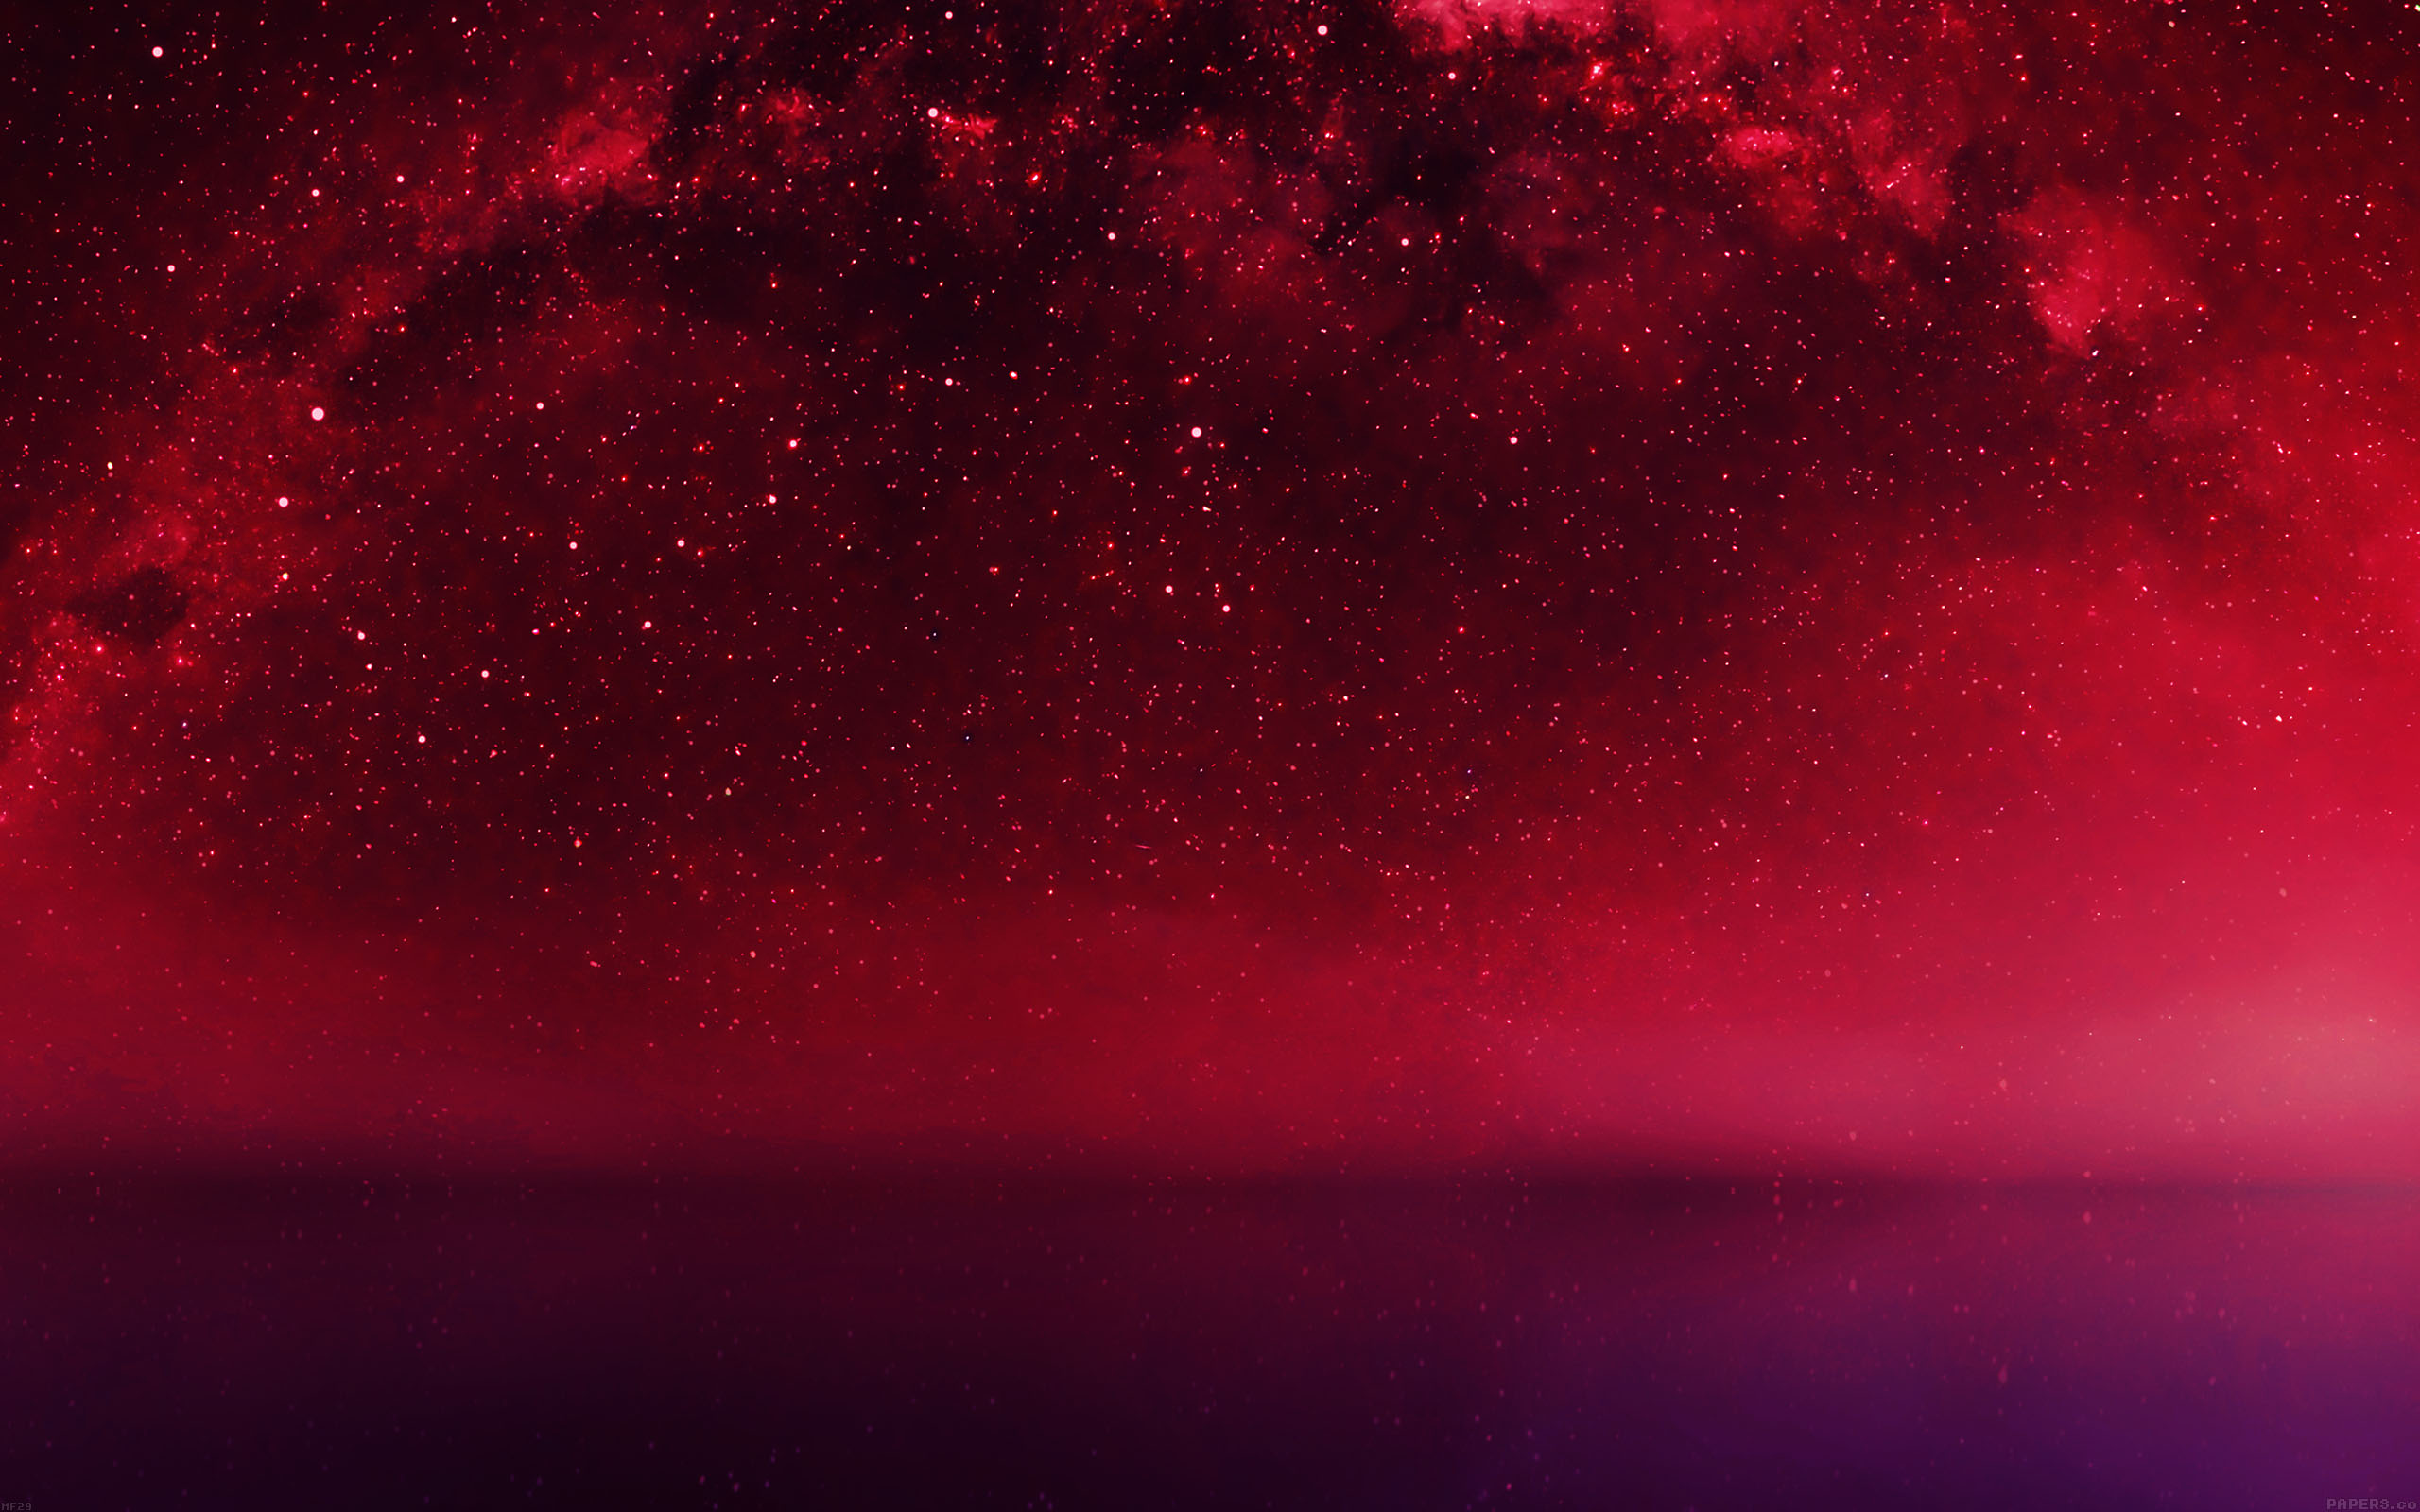 mf29-cosmos-red-night-live-lake-space-starry - Papers.co